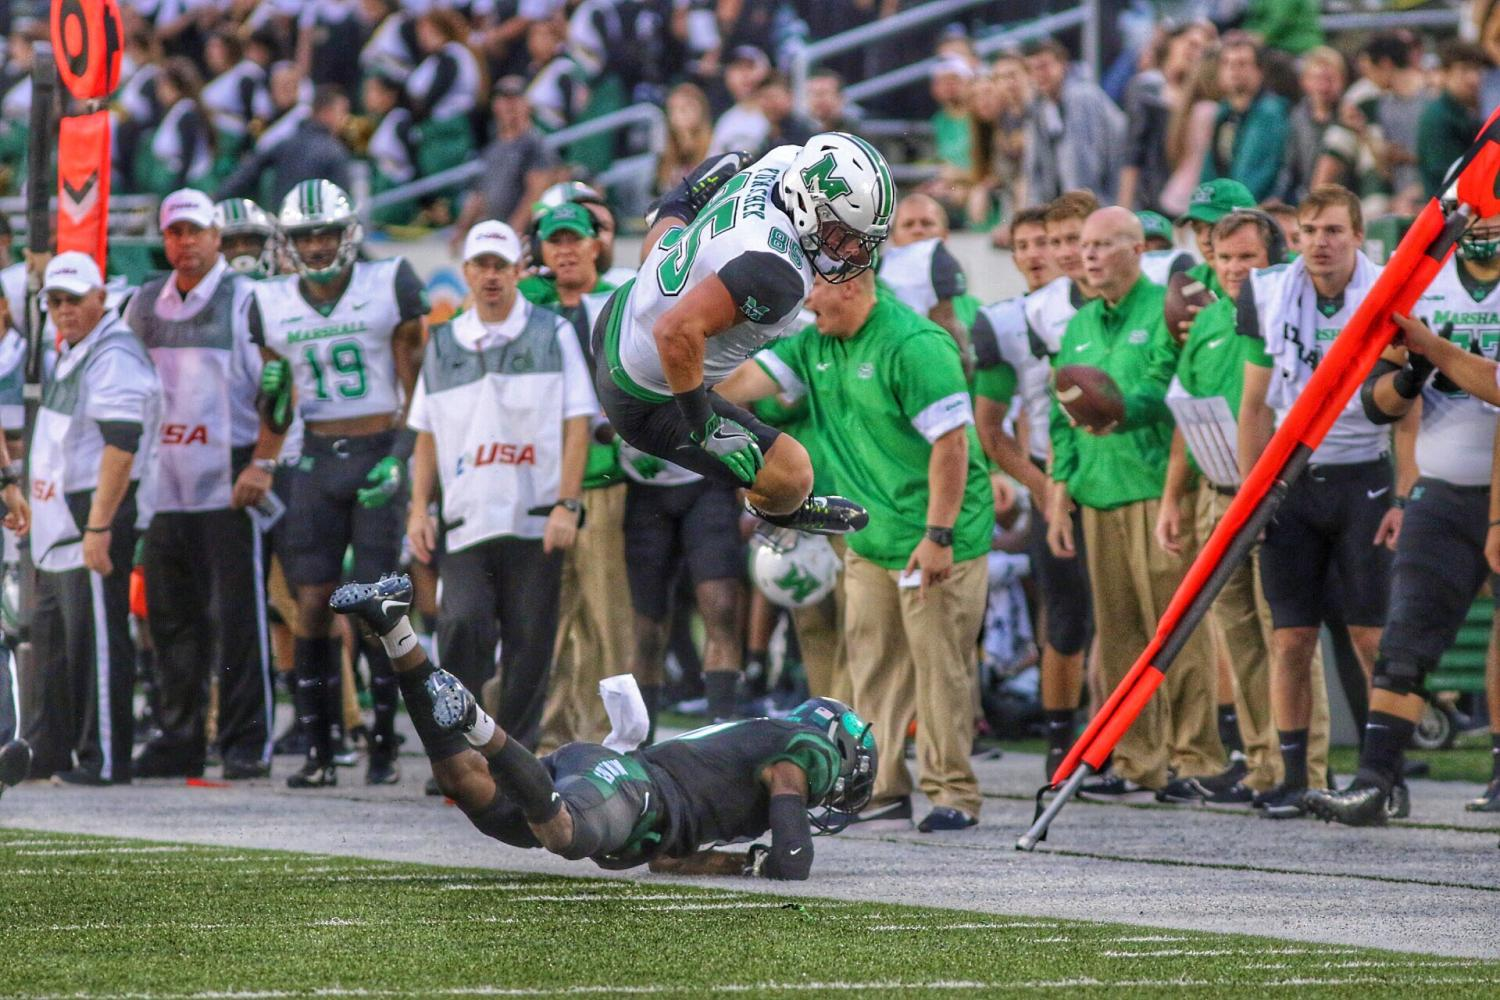 Ryan Yurachek leaps in the air after catching one of his three first half receptions. He now has a 34-game reception streak.